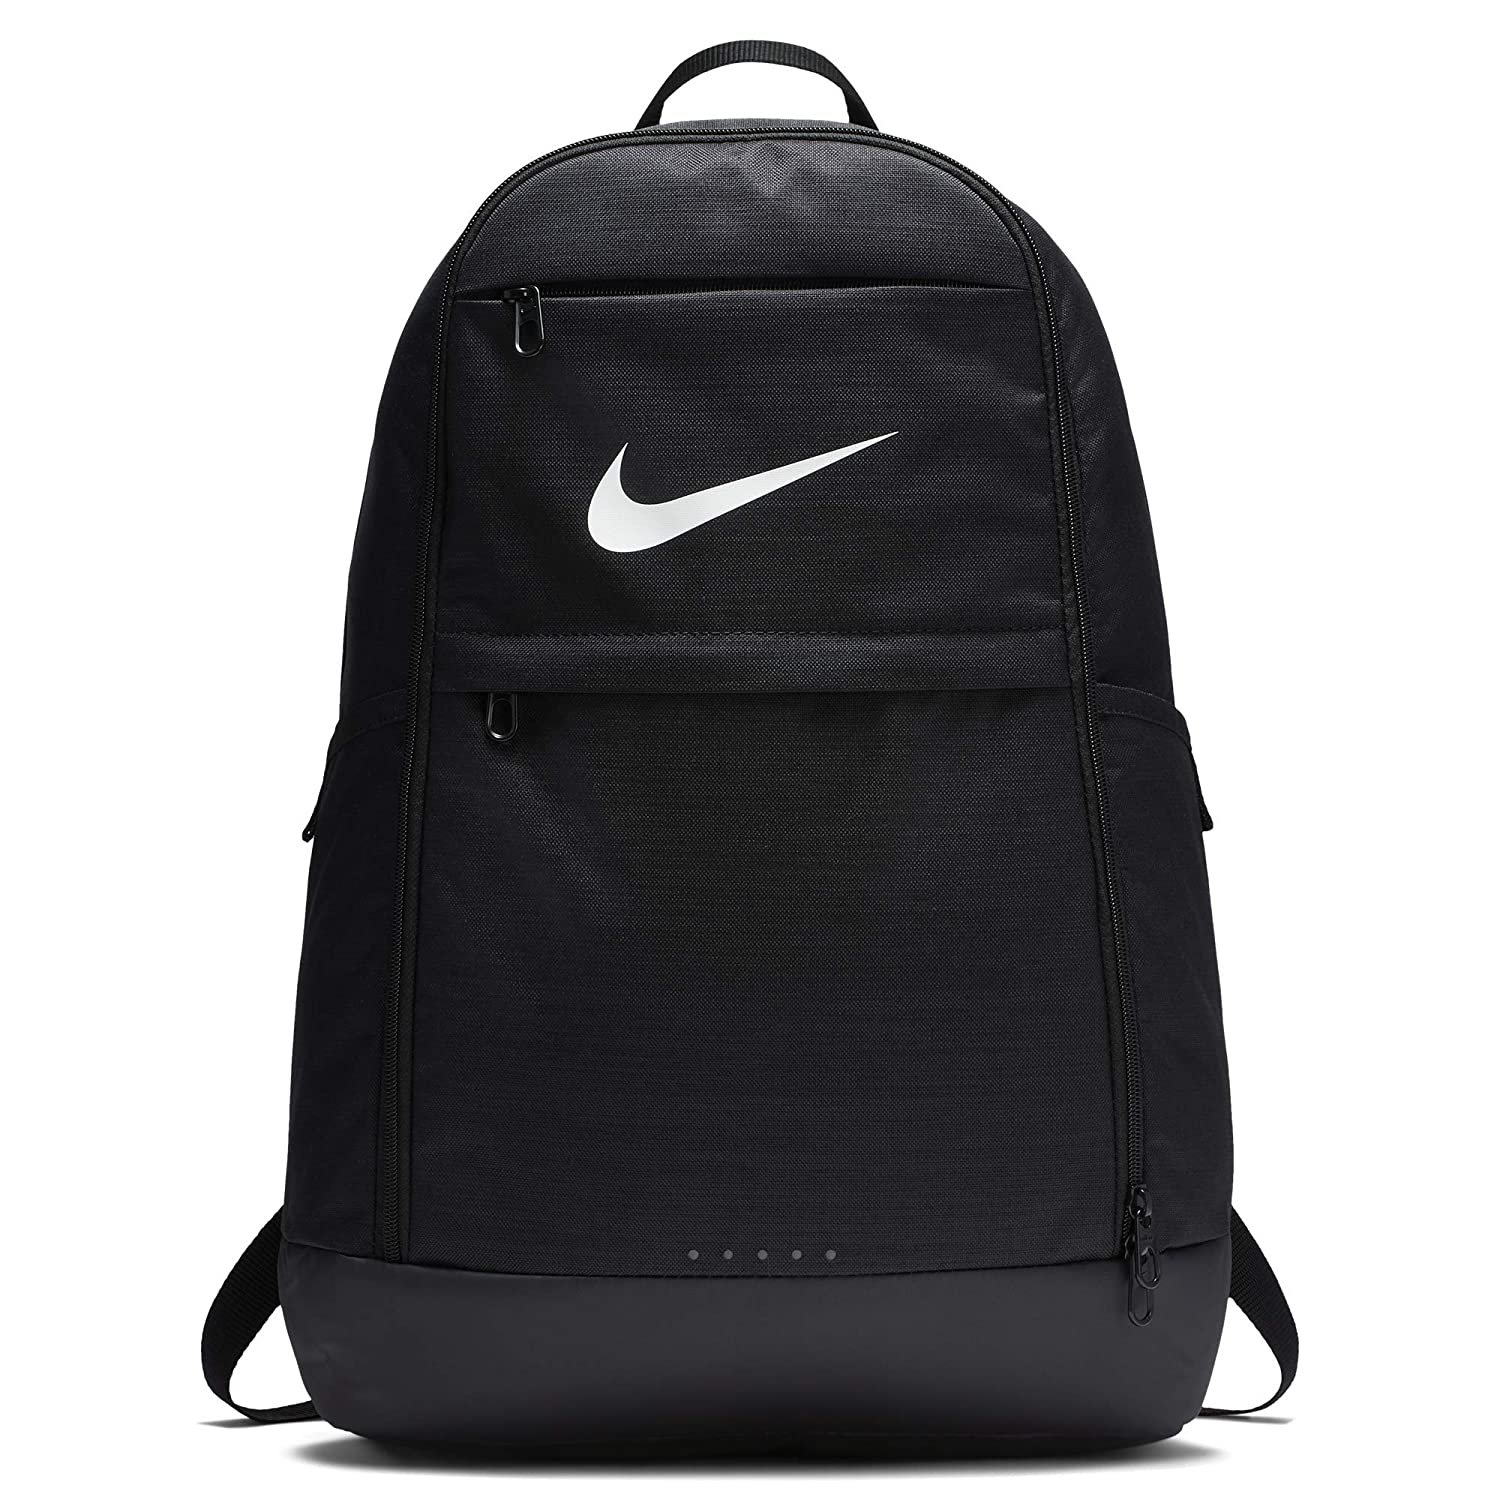 Nike Black/White Casual Backpack